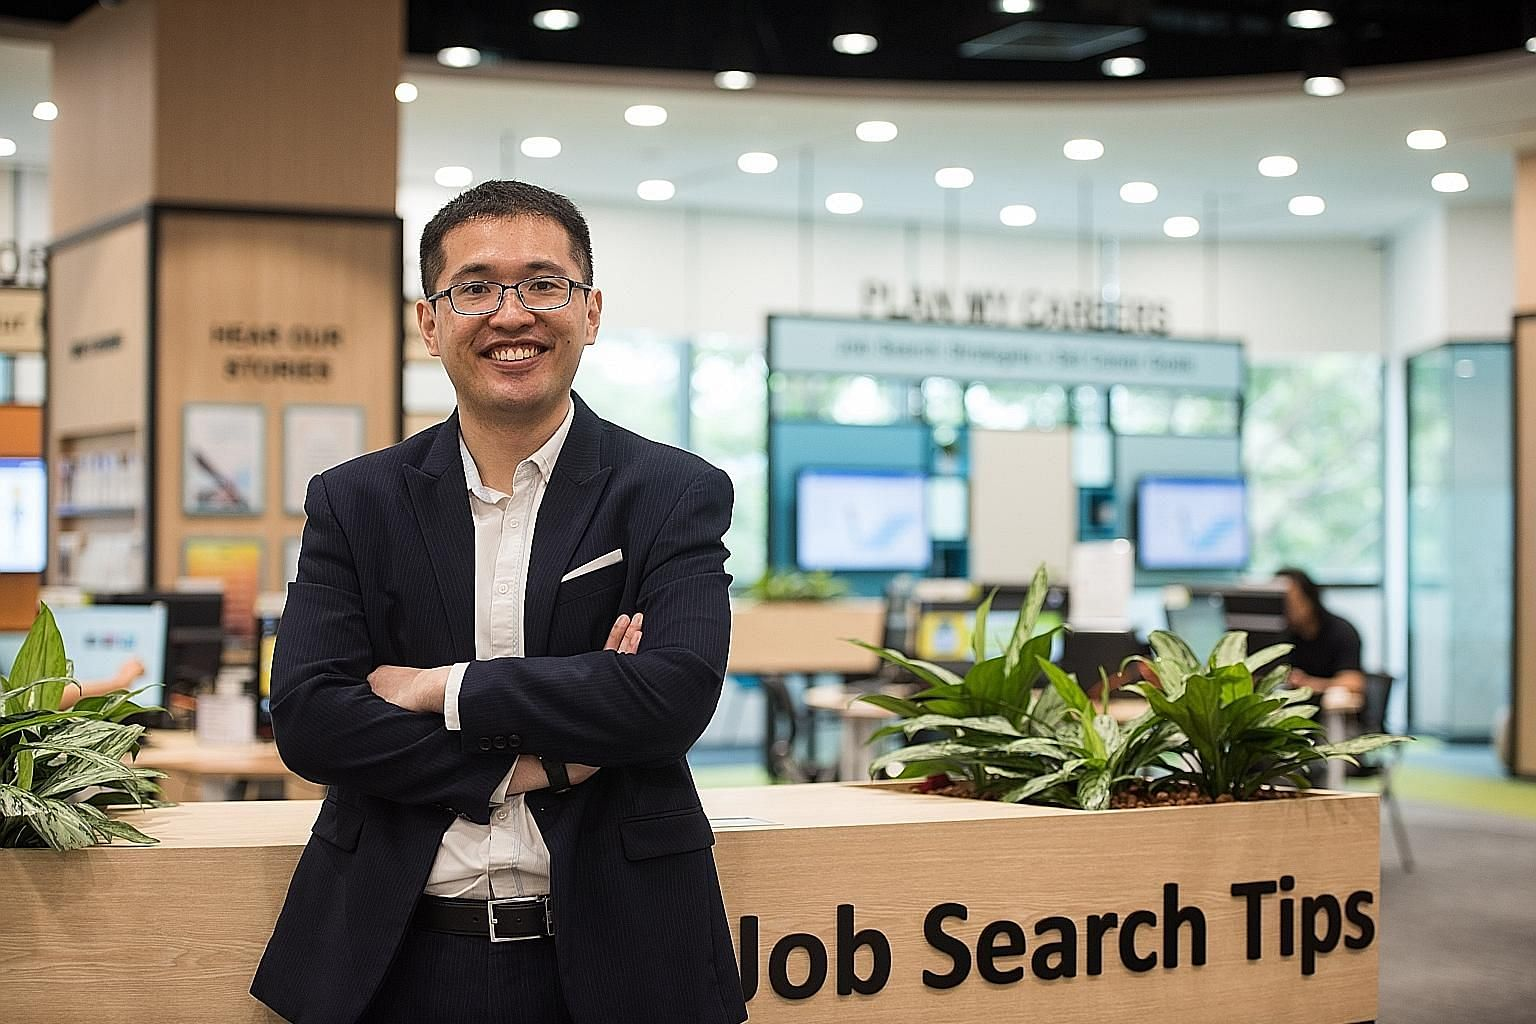 Mr Andrew Er and his team at Workforce Singapore started the Career Recharger programme last year. It is a structured system that provides job seekers facing emotional stress with more targeted counselling. Sometimes, job seekers need more than just